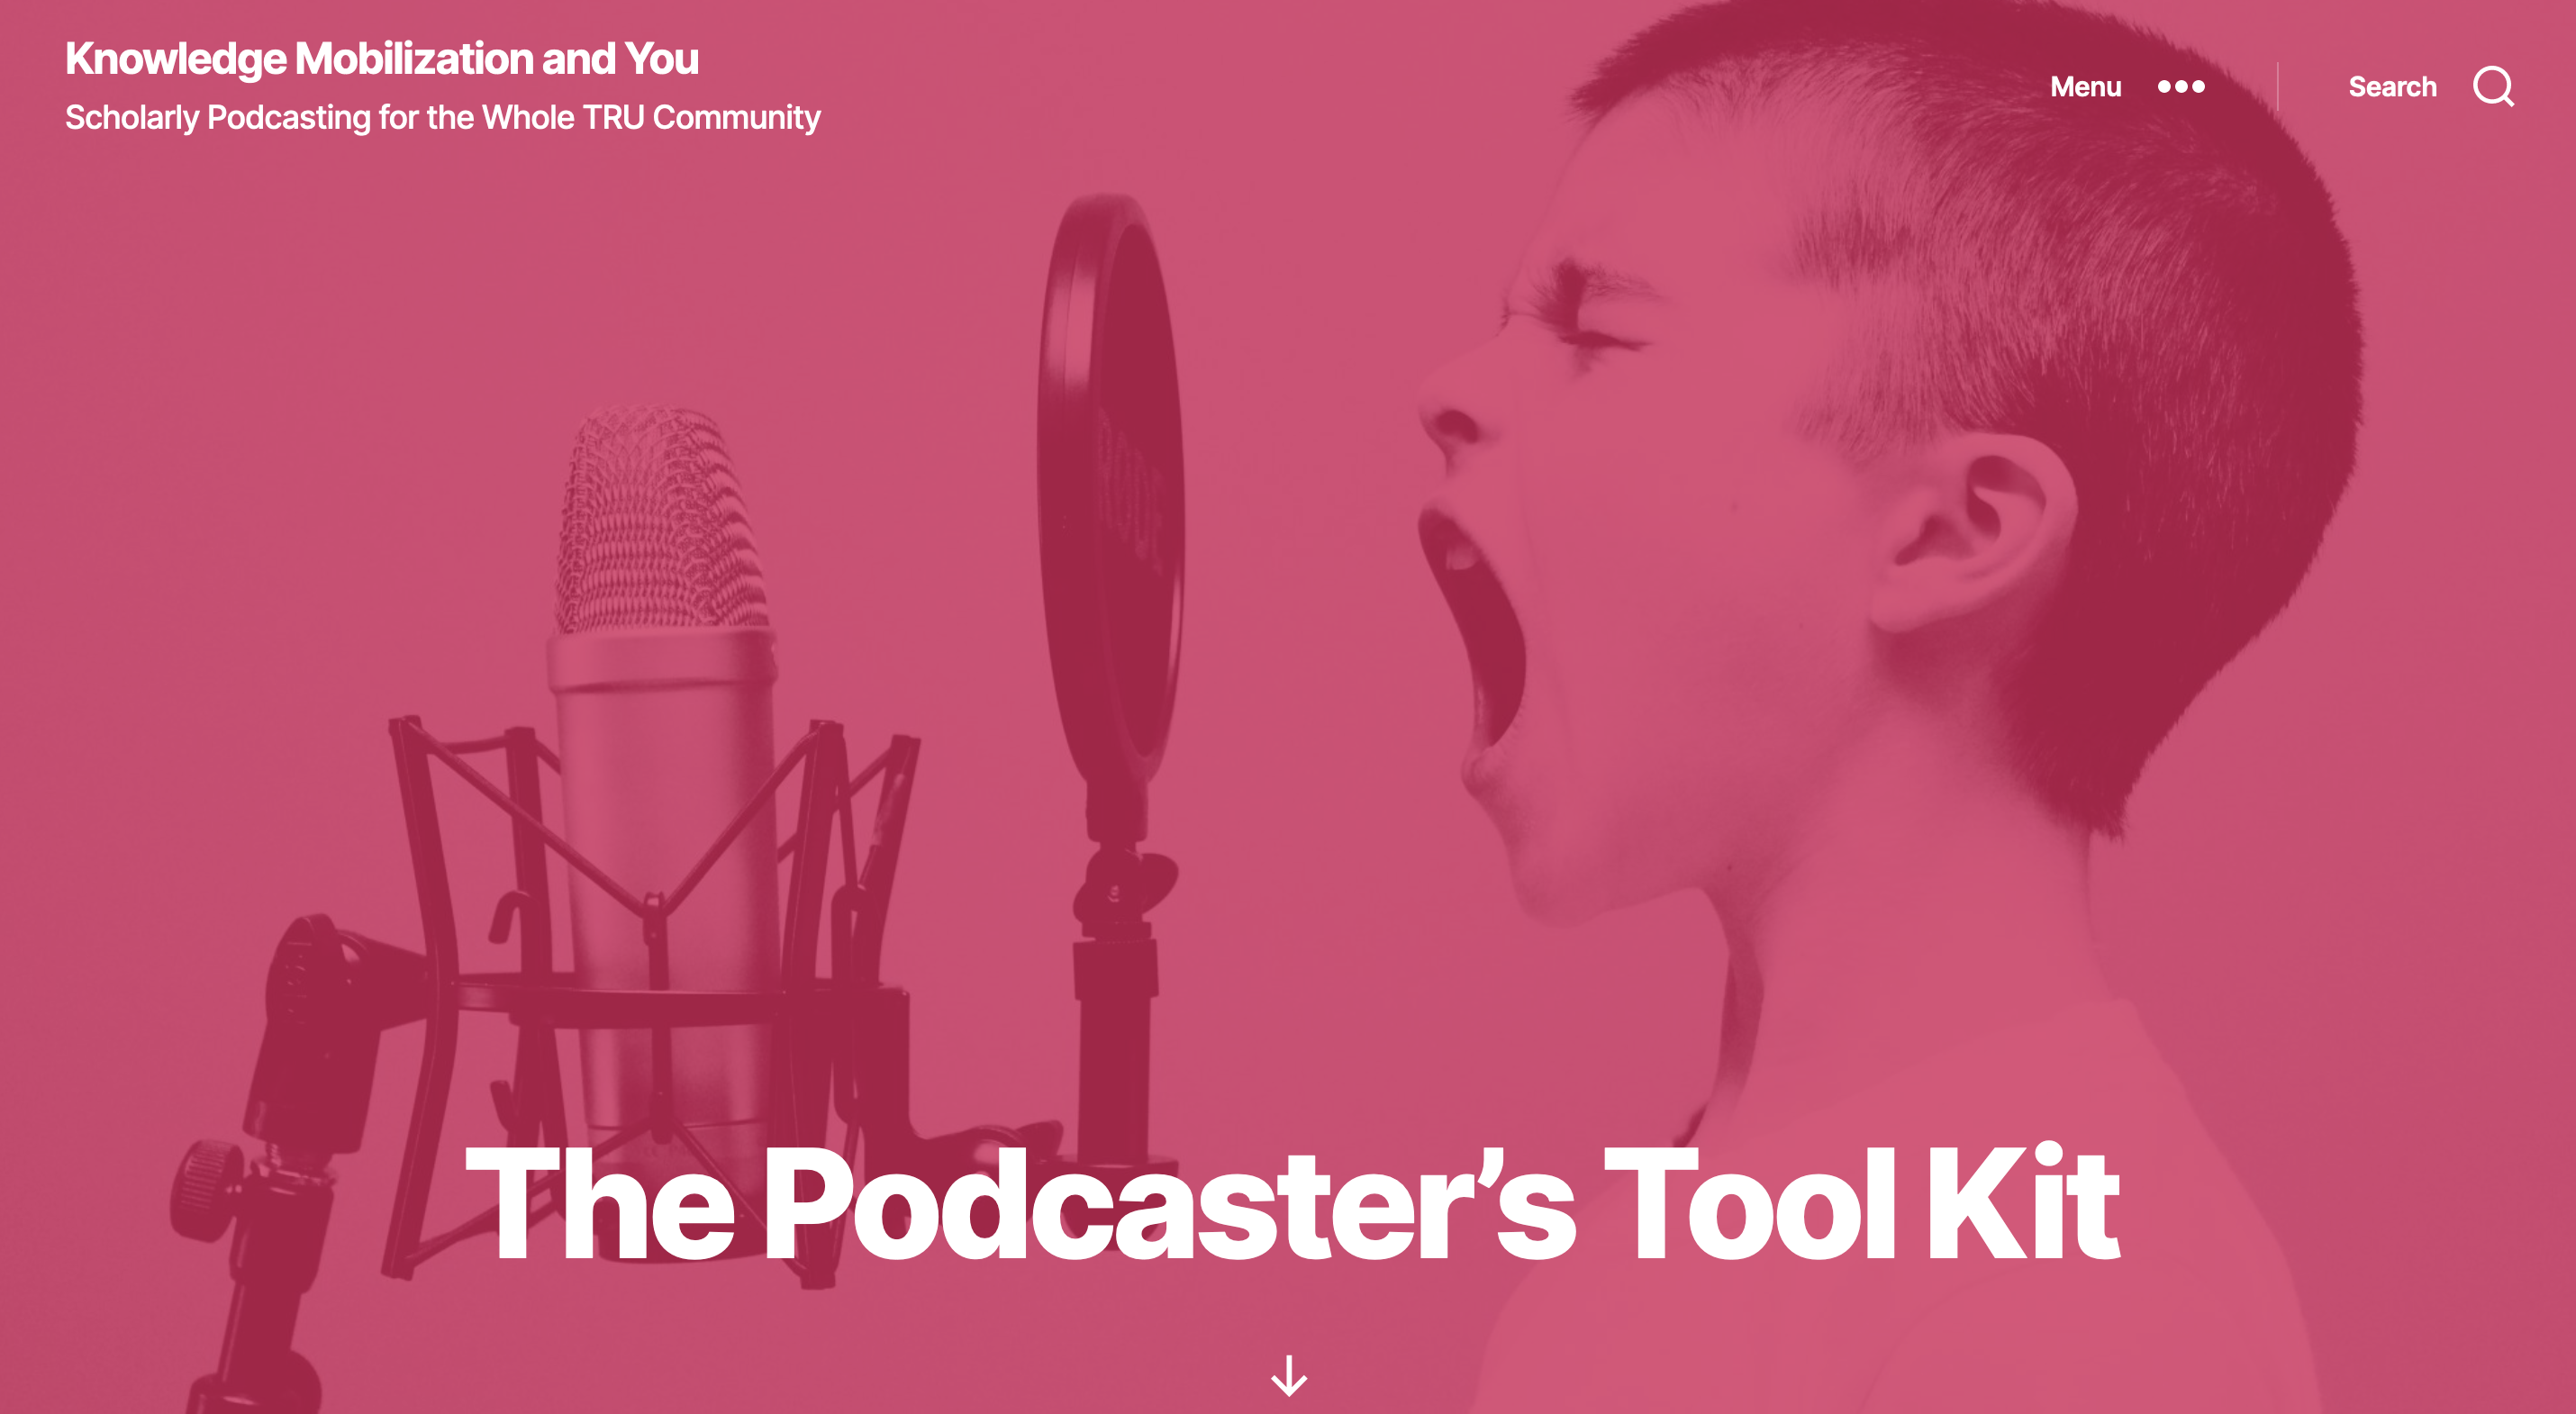 The Podcaster's Tool Kit an image of a kid screaming into a microphone.